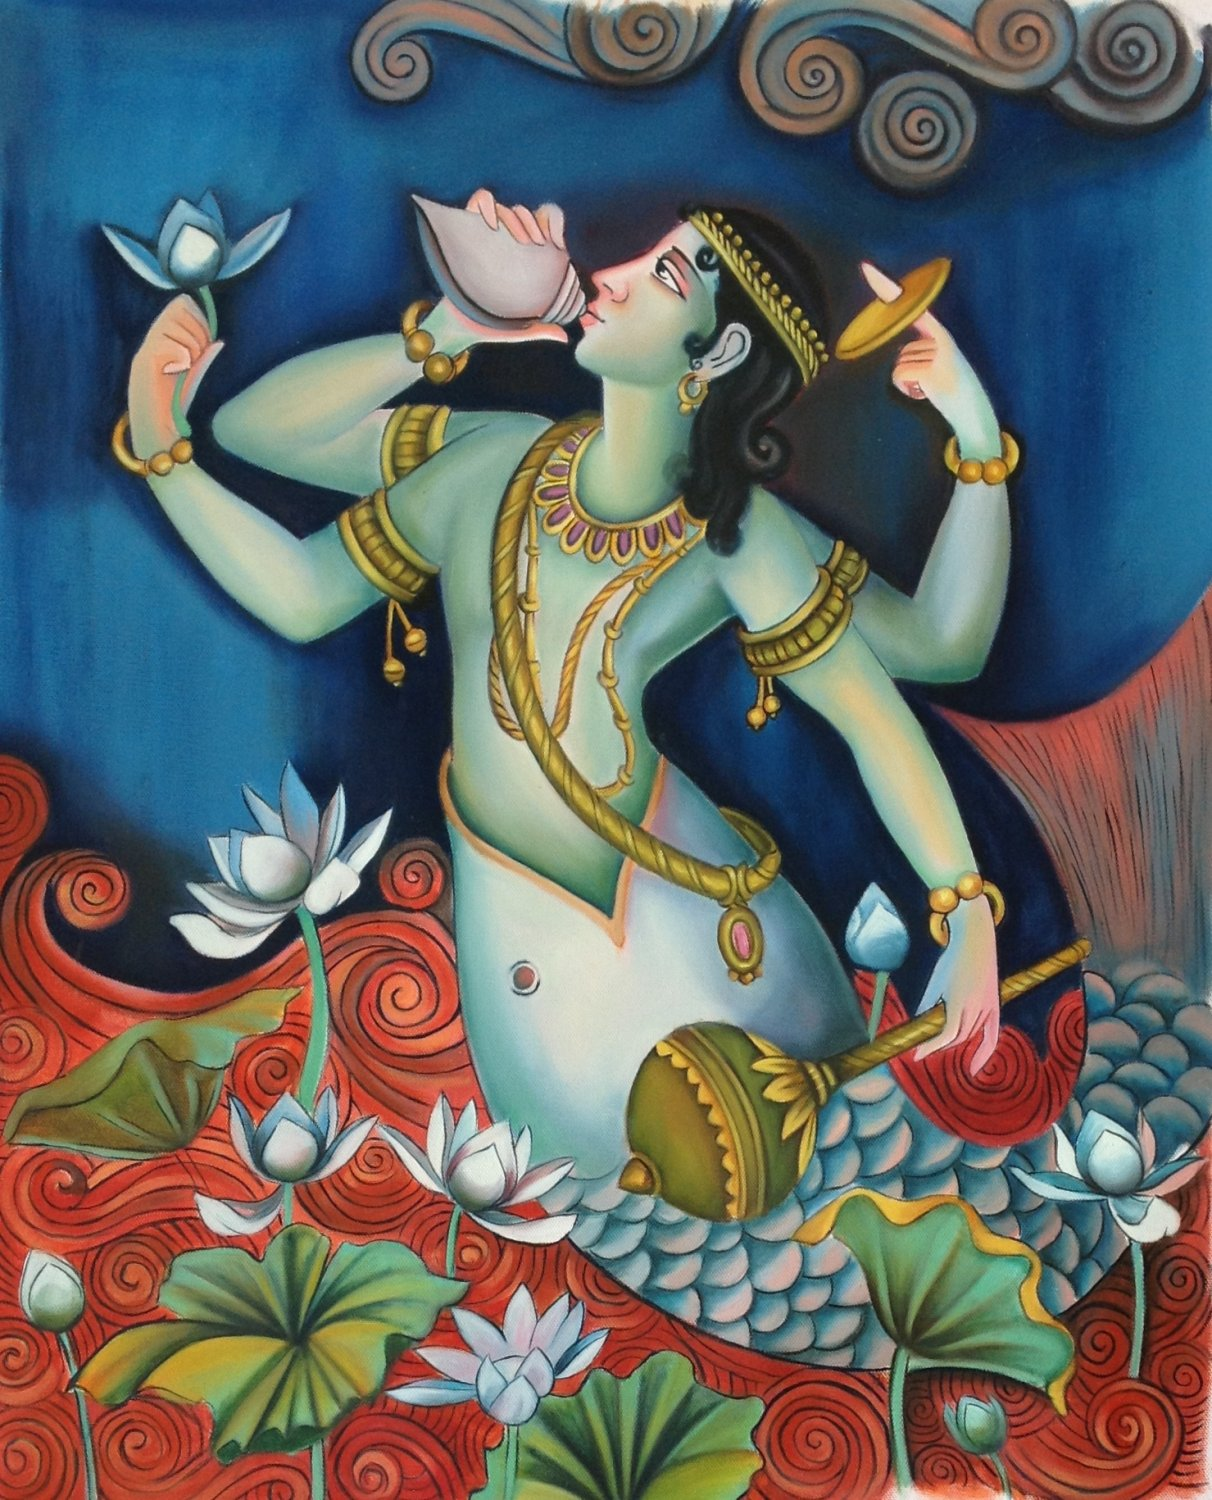 Matsya Art Handmade Vishnu Avatar Hindu Deity Indian Canvas Oil Decor Painting